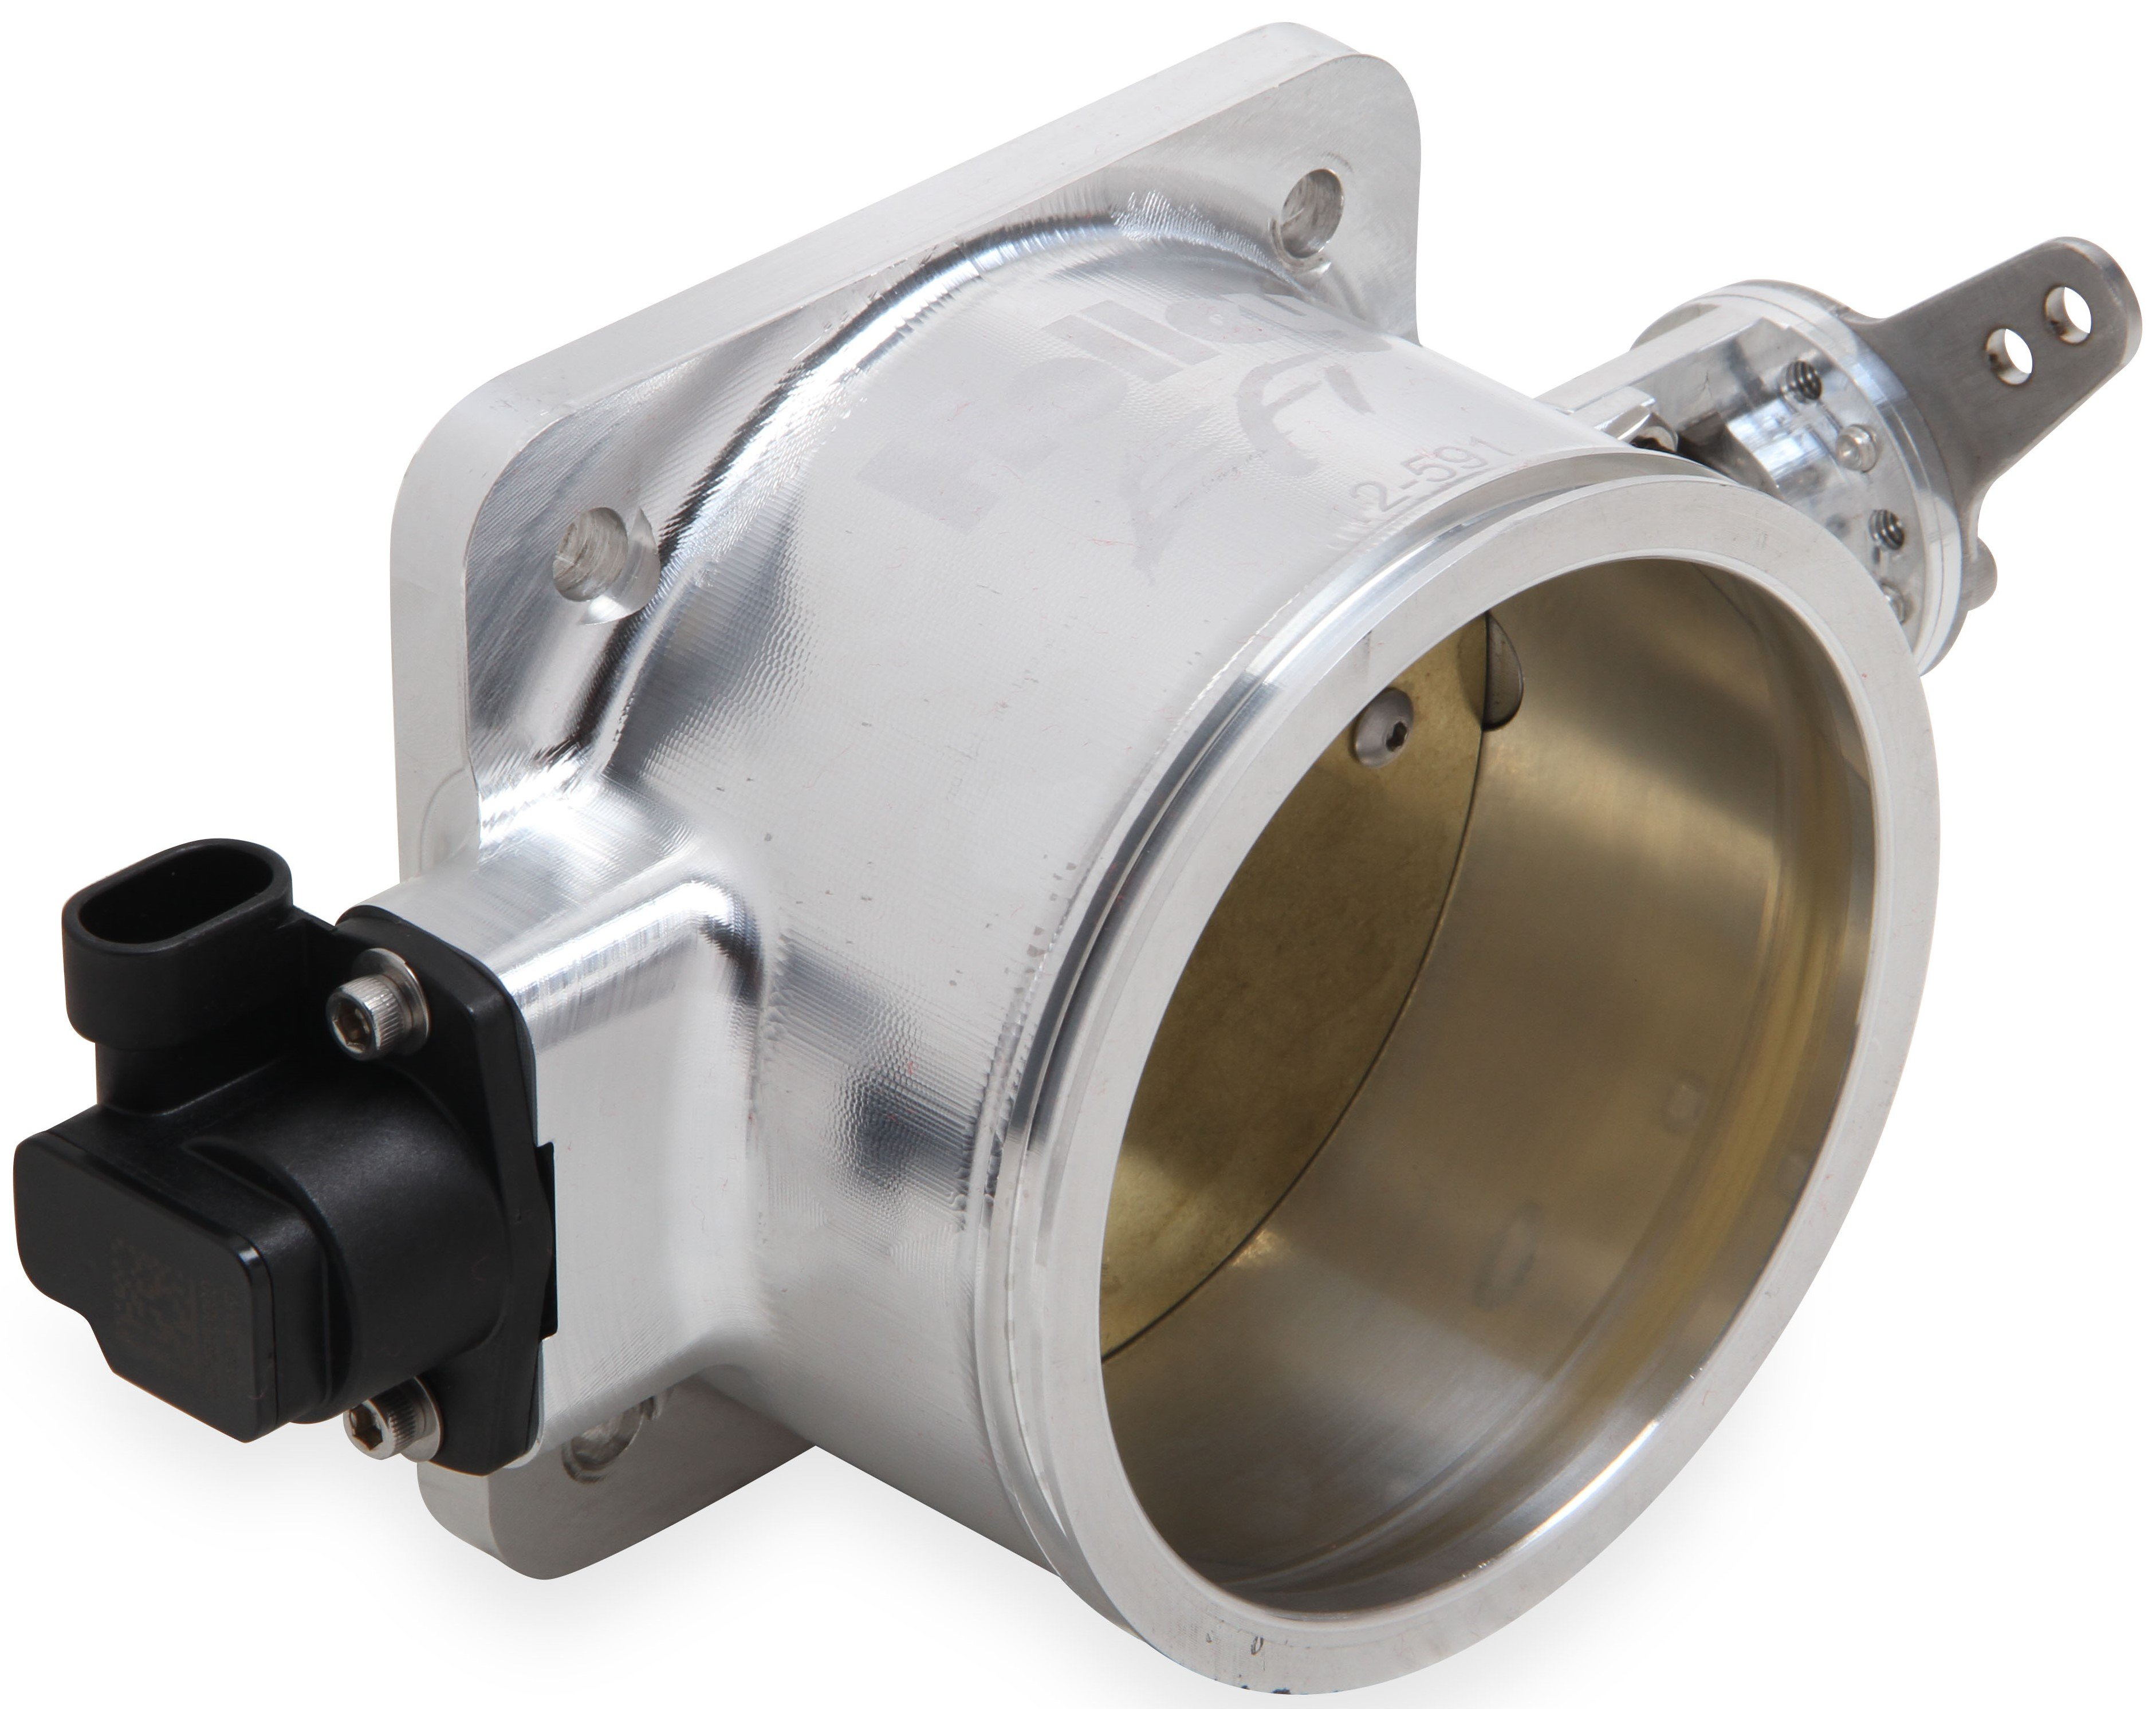 Holley EFI Billet Racing 105mm Throttle Bodies Available For